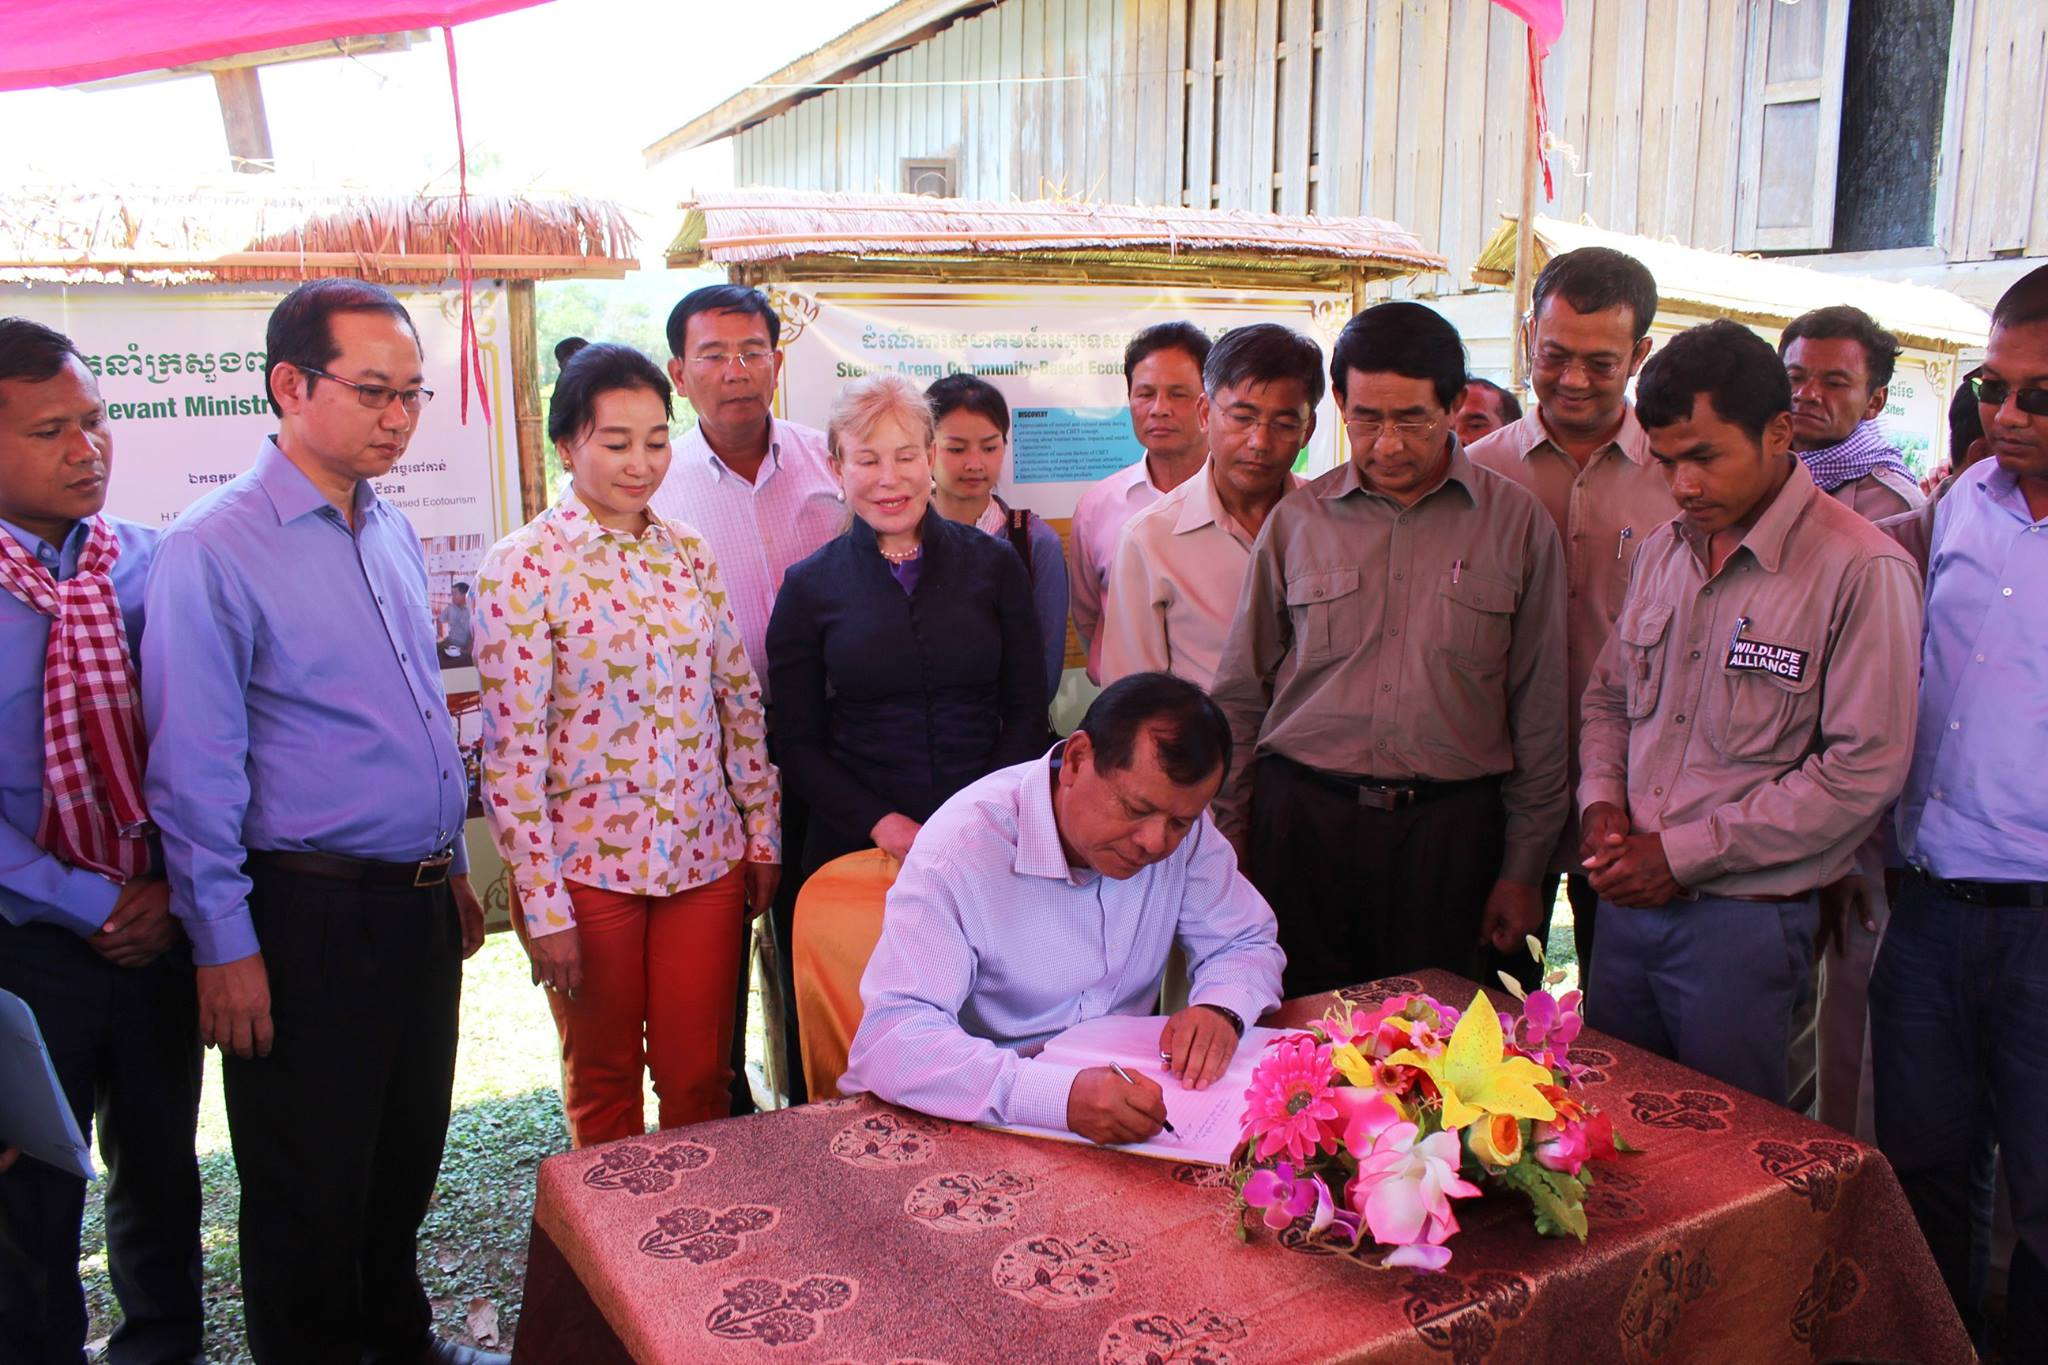 Community-Based Ecotourism Chhay Areng Valley - H.E. Thong Khon, Minister of Tourism and Suwanna Gauntlett CEO WA Community-Based Ecotourism Chhay Areng Valley – H.E. Thong Khon, Minister of Tourism and Suwanna Gauntlett CEO WA HE Thong Khon and CEO Wildlife Alliance Suwanna Gauntlett the signature